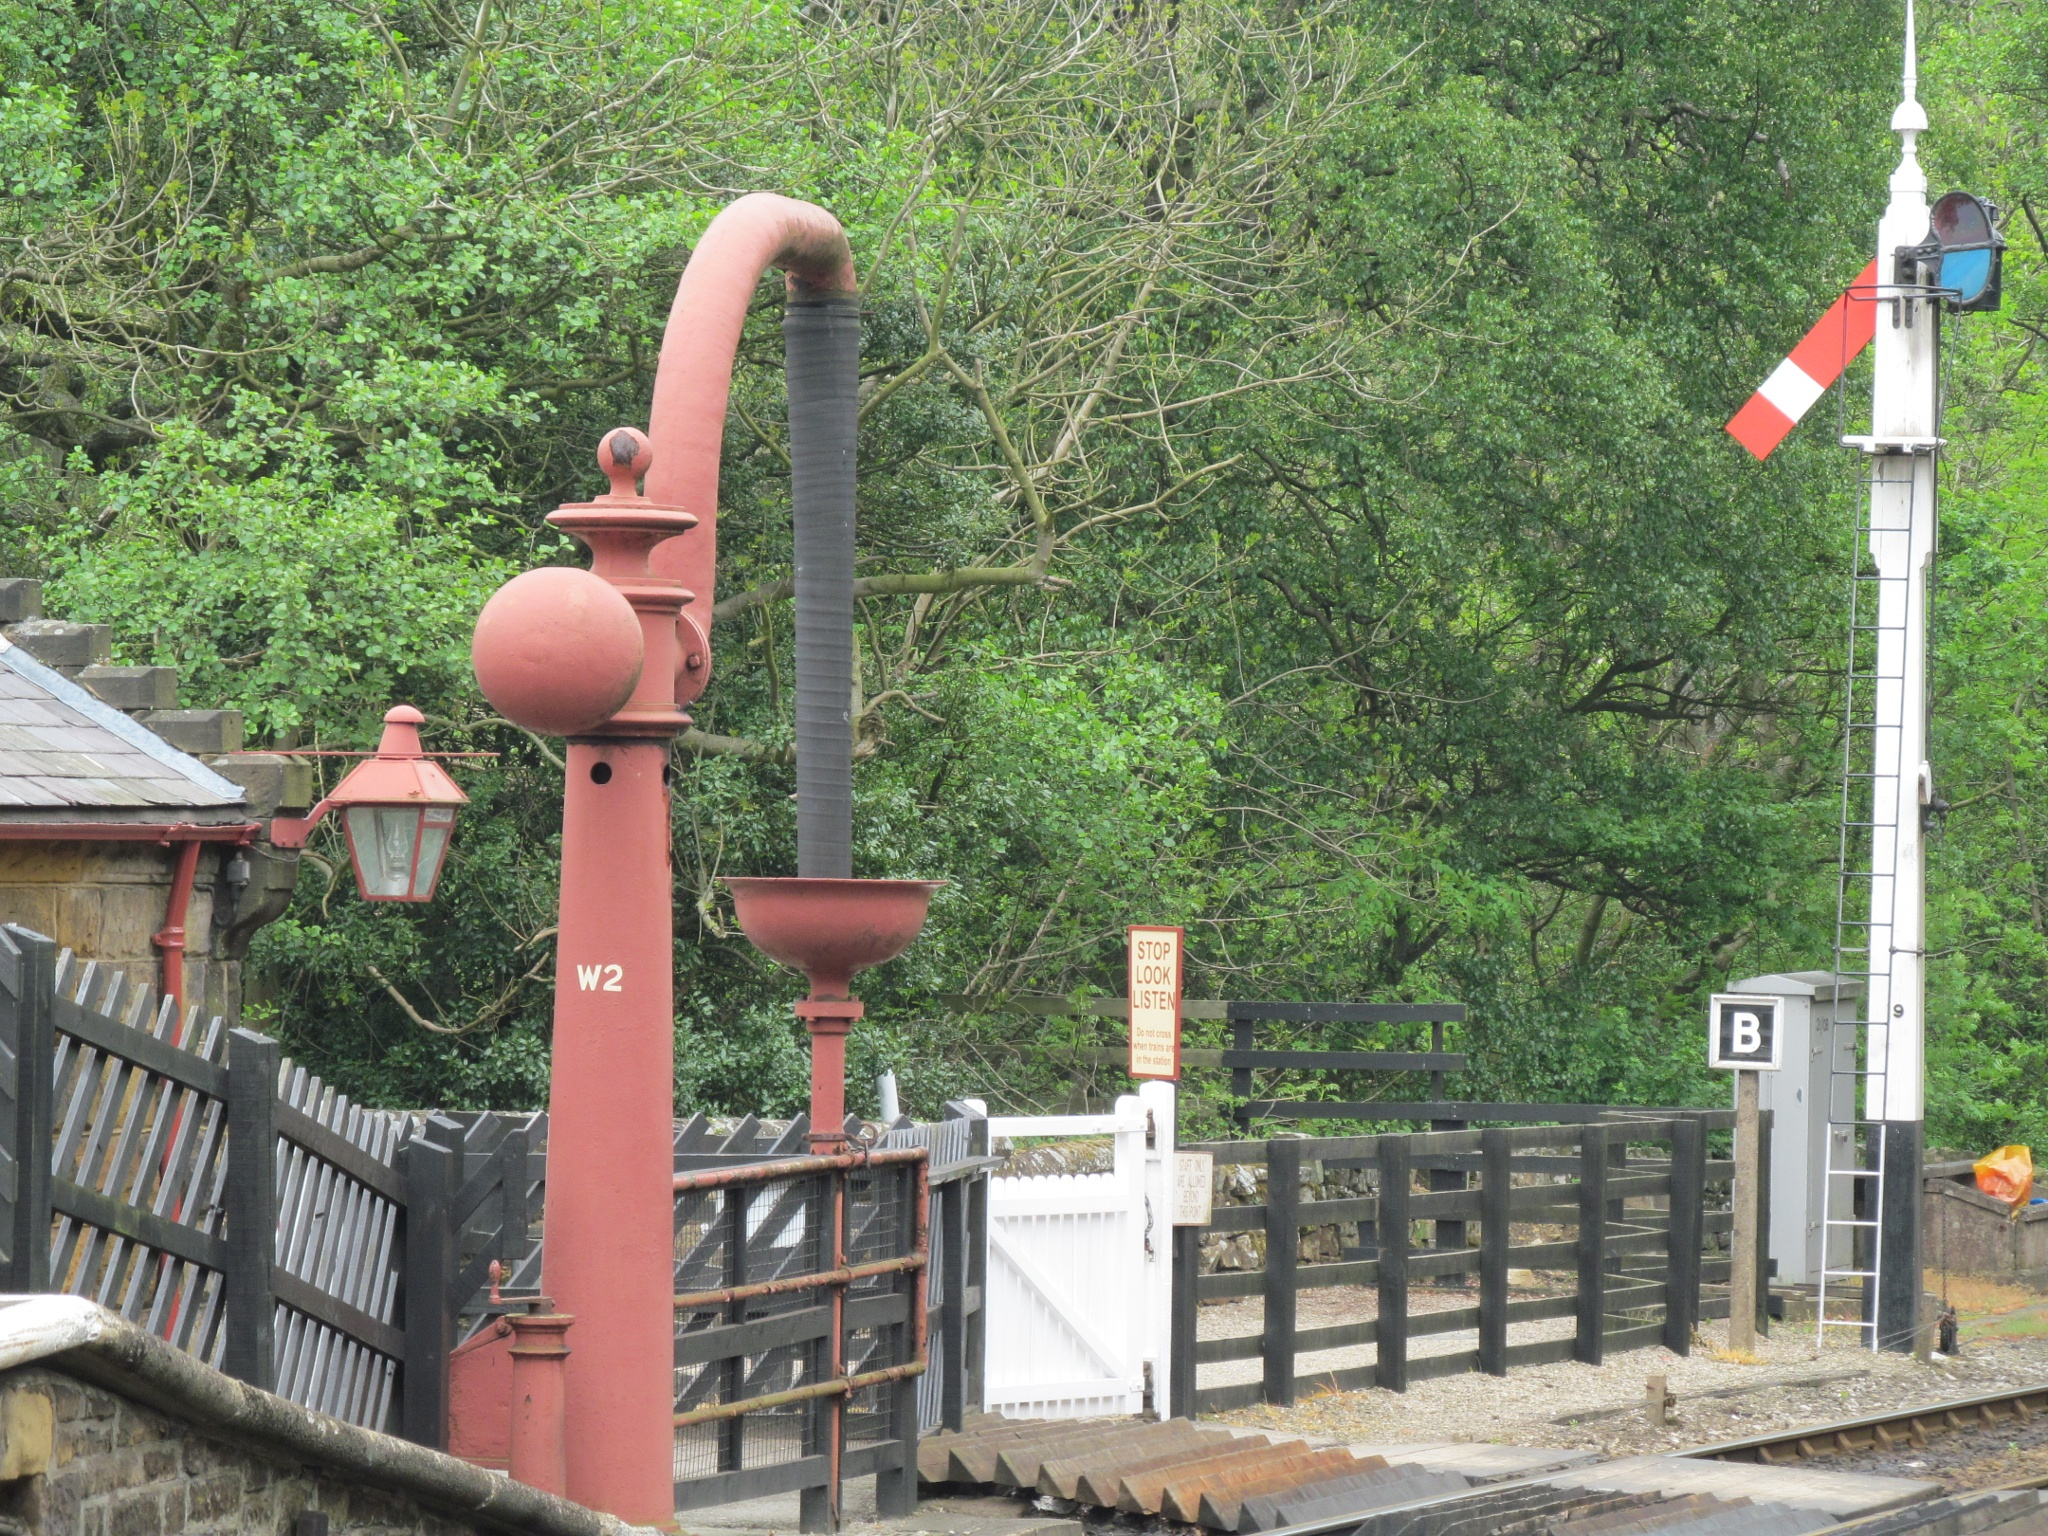 Station water pump & signal by joan croll